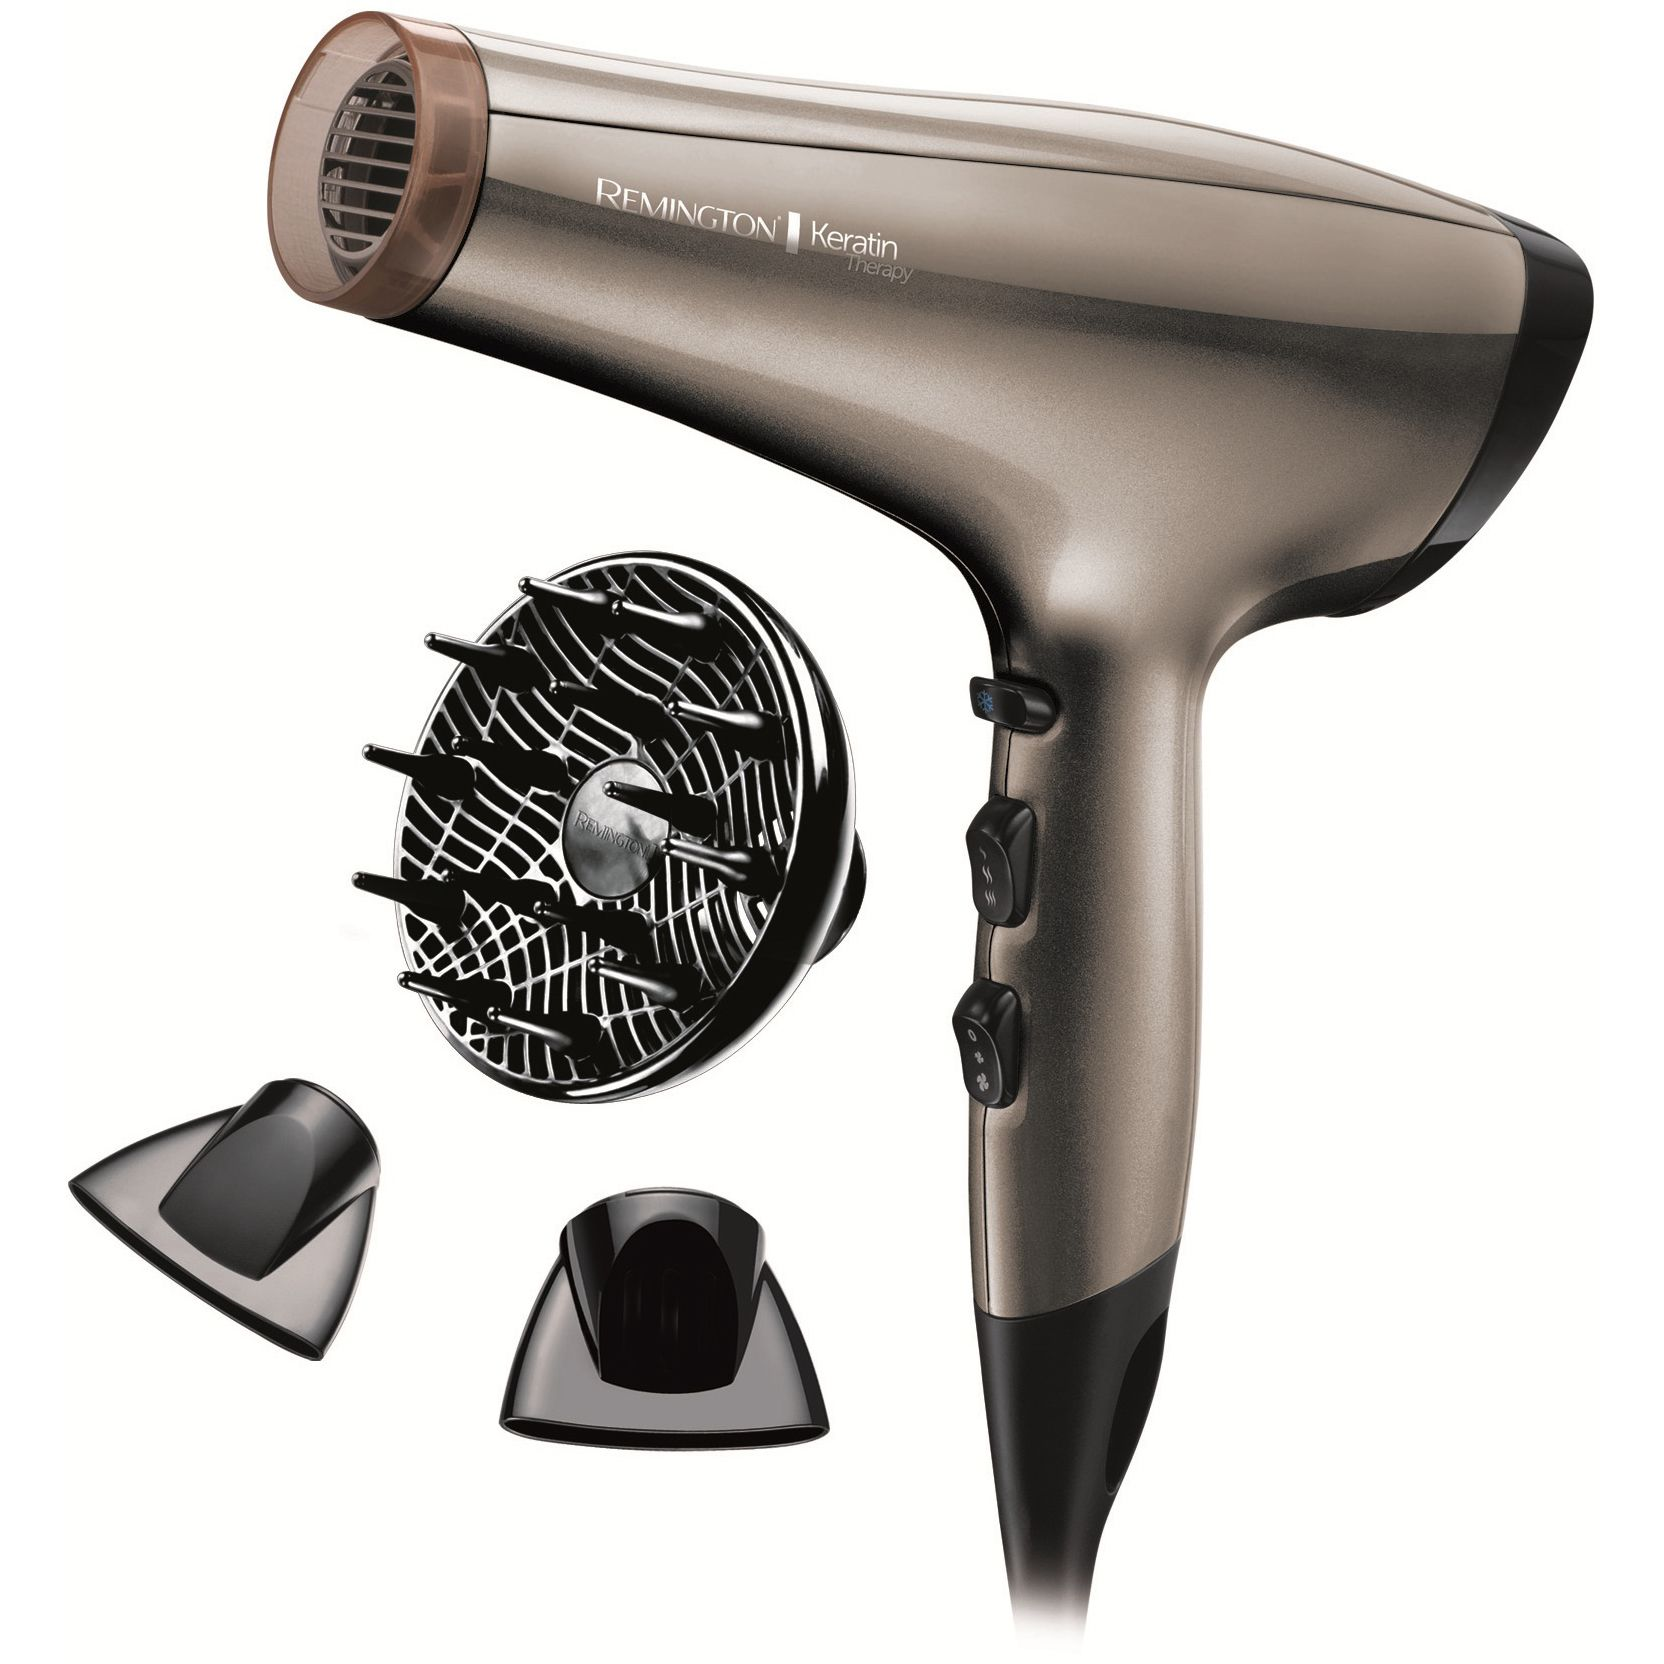 Uscator de par Remington Keratin Therapy Pro Dryer AC8000 2200W 2 viteze Maro